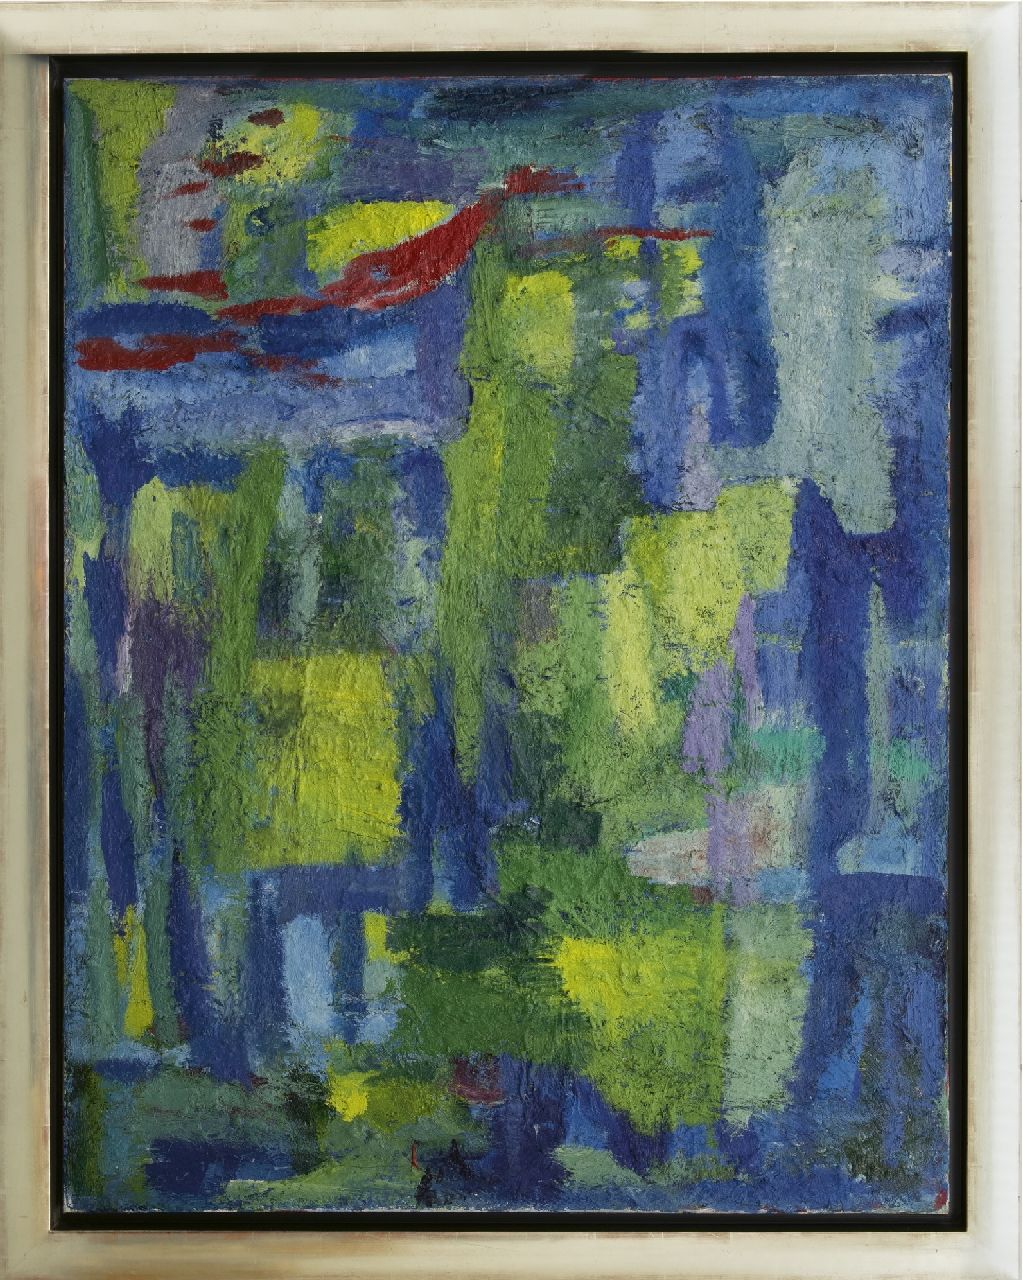 Benner G.  | Gerrit Benner, Untitled, oil on canvas 129.5 x 100.0 cm, signed on the reverse and painted ca. 1960